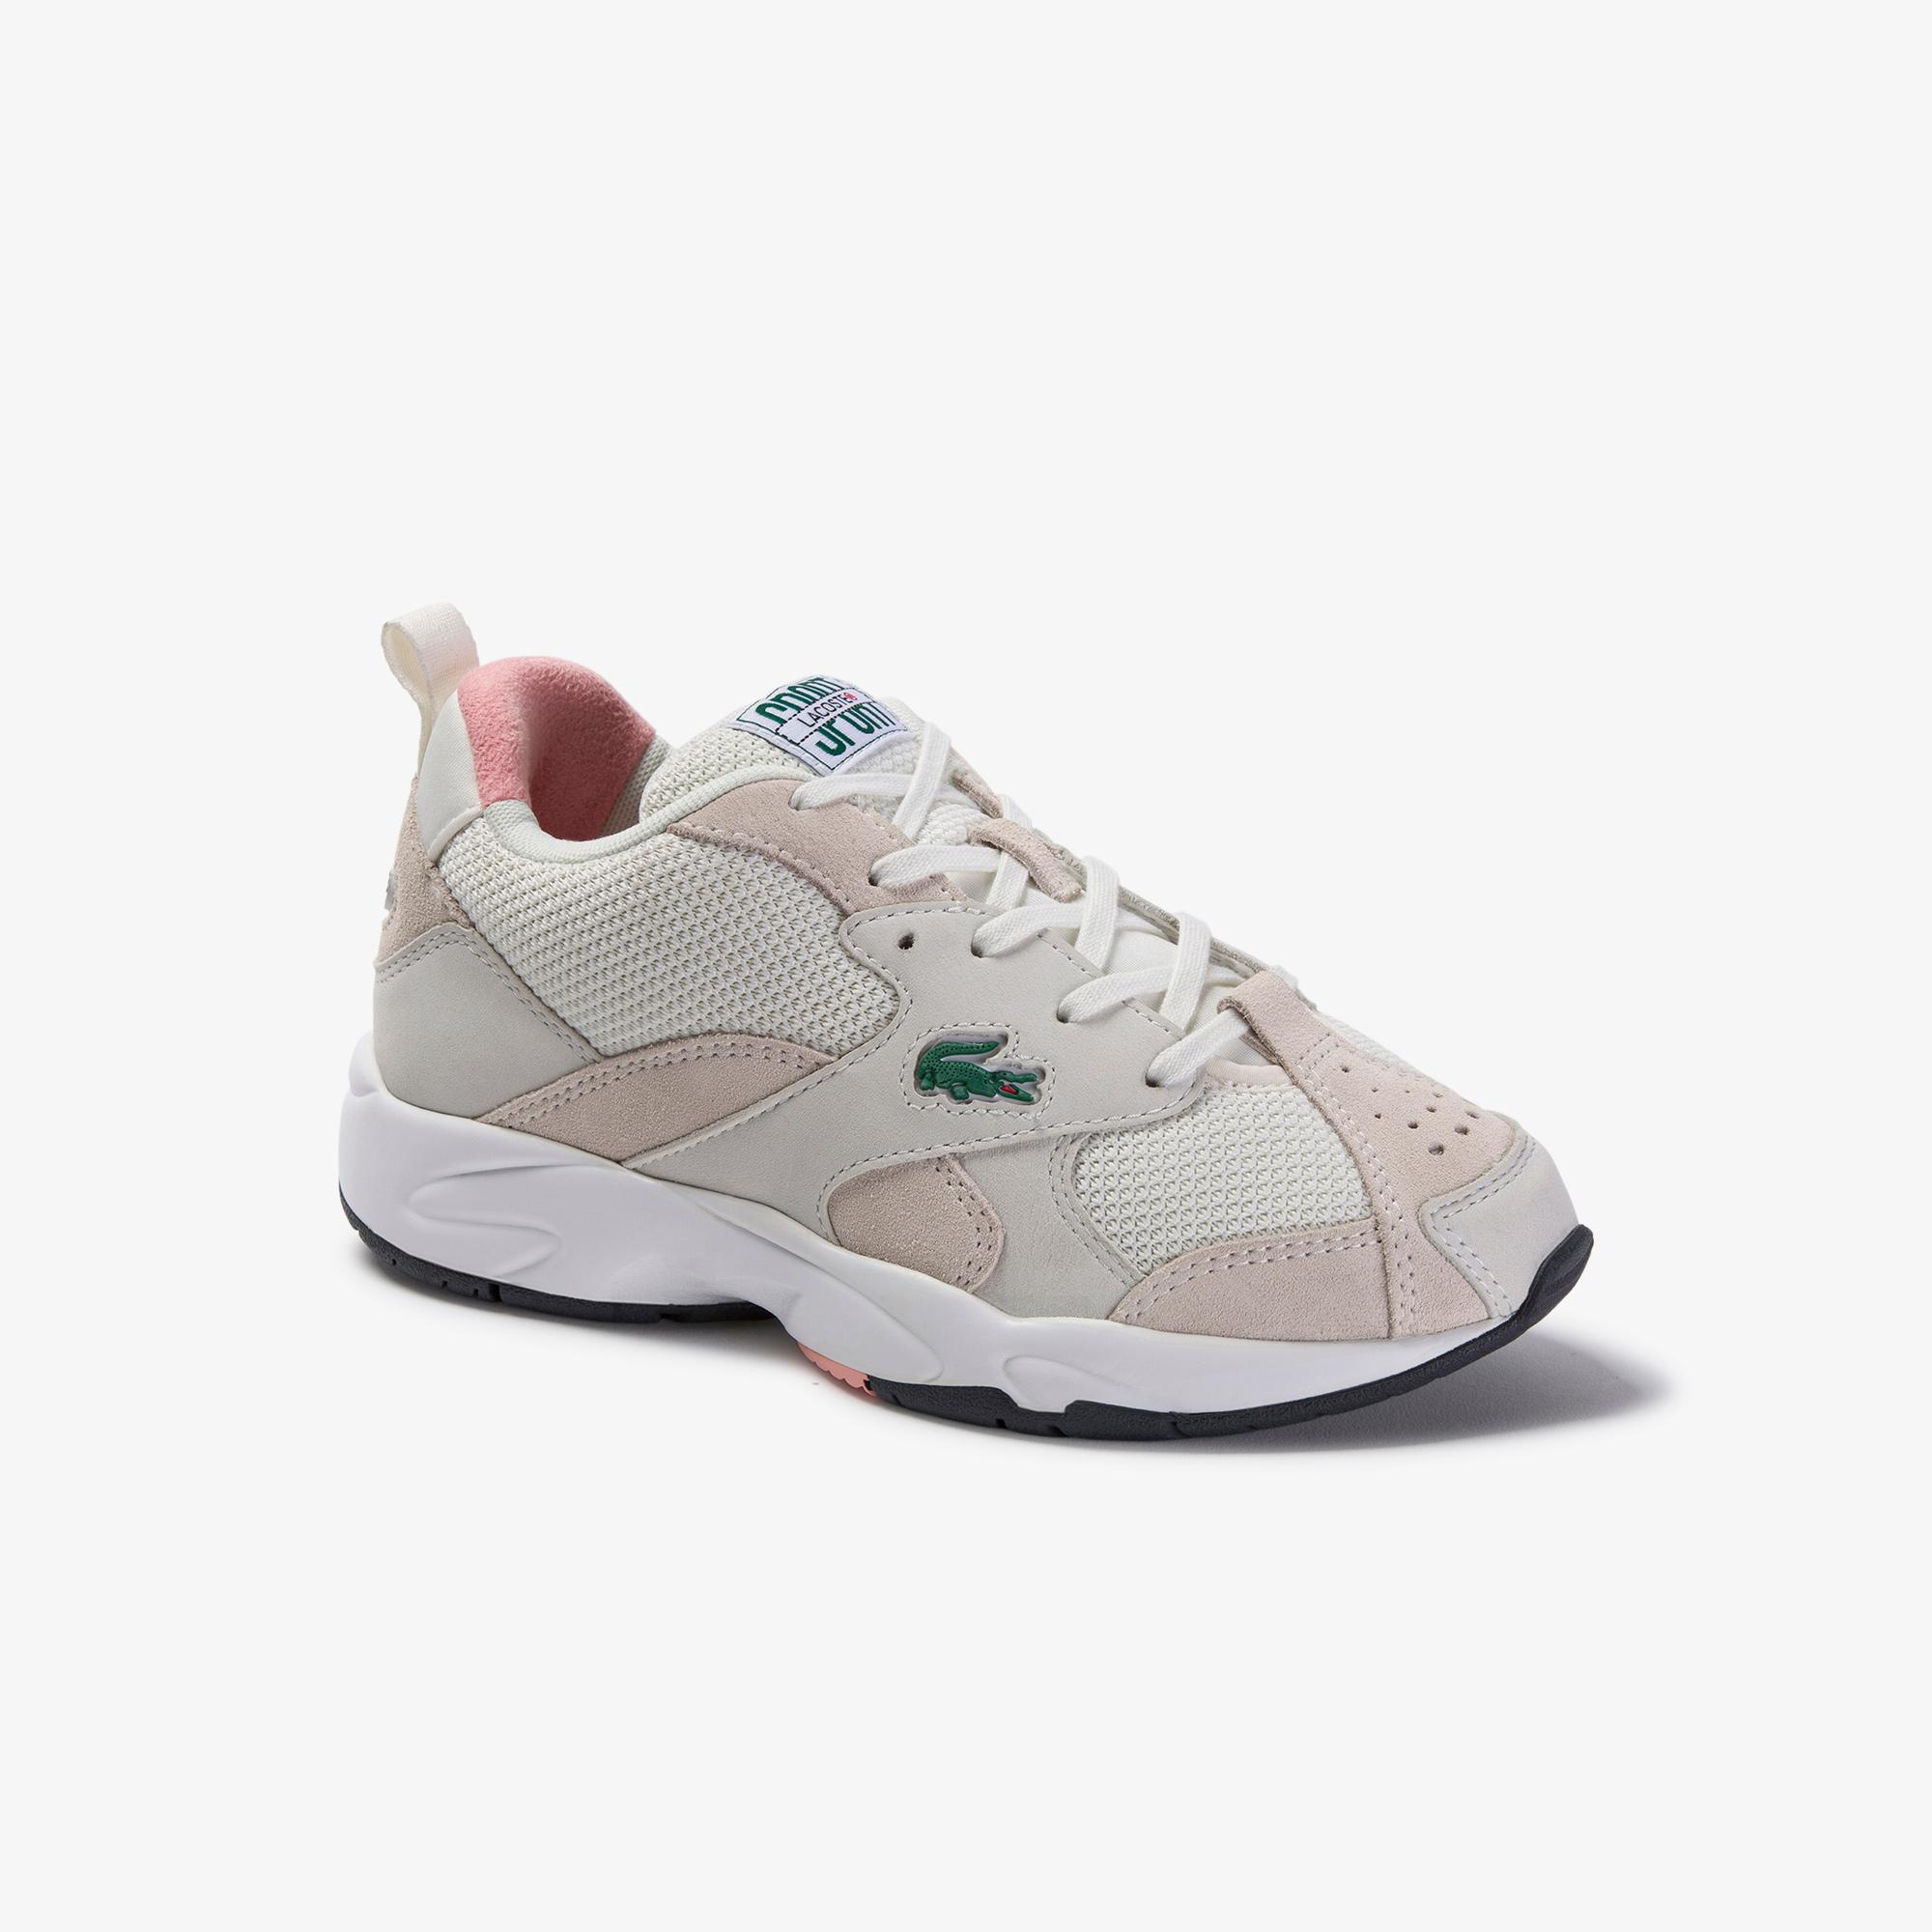 Lacoste Storm 96 120 3 US Sneakersy